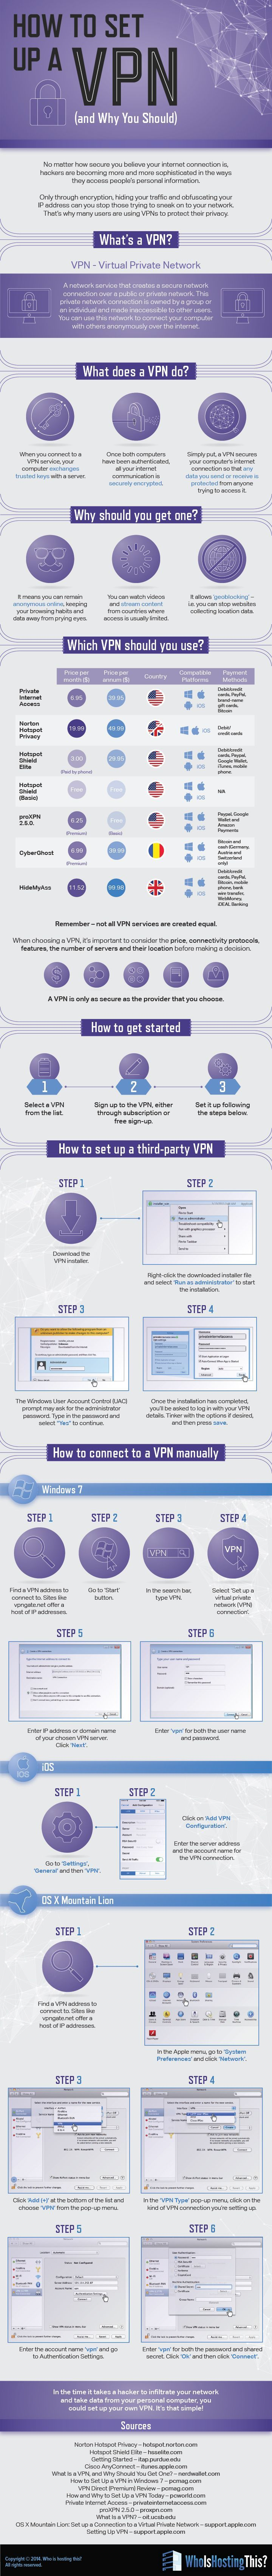 How To Set Up a VPN (and Why You Should) #infographic #VPN